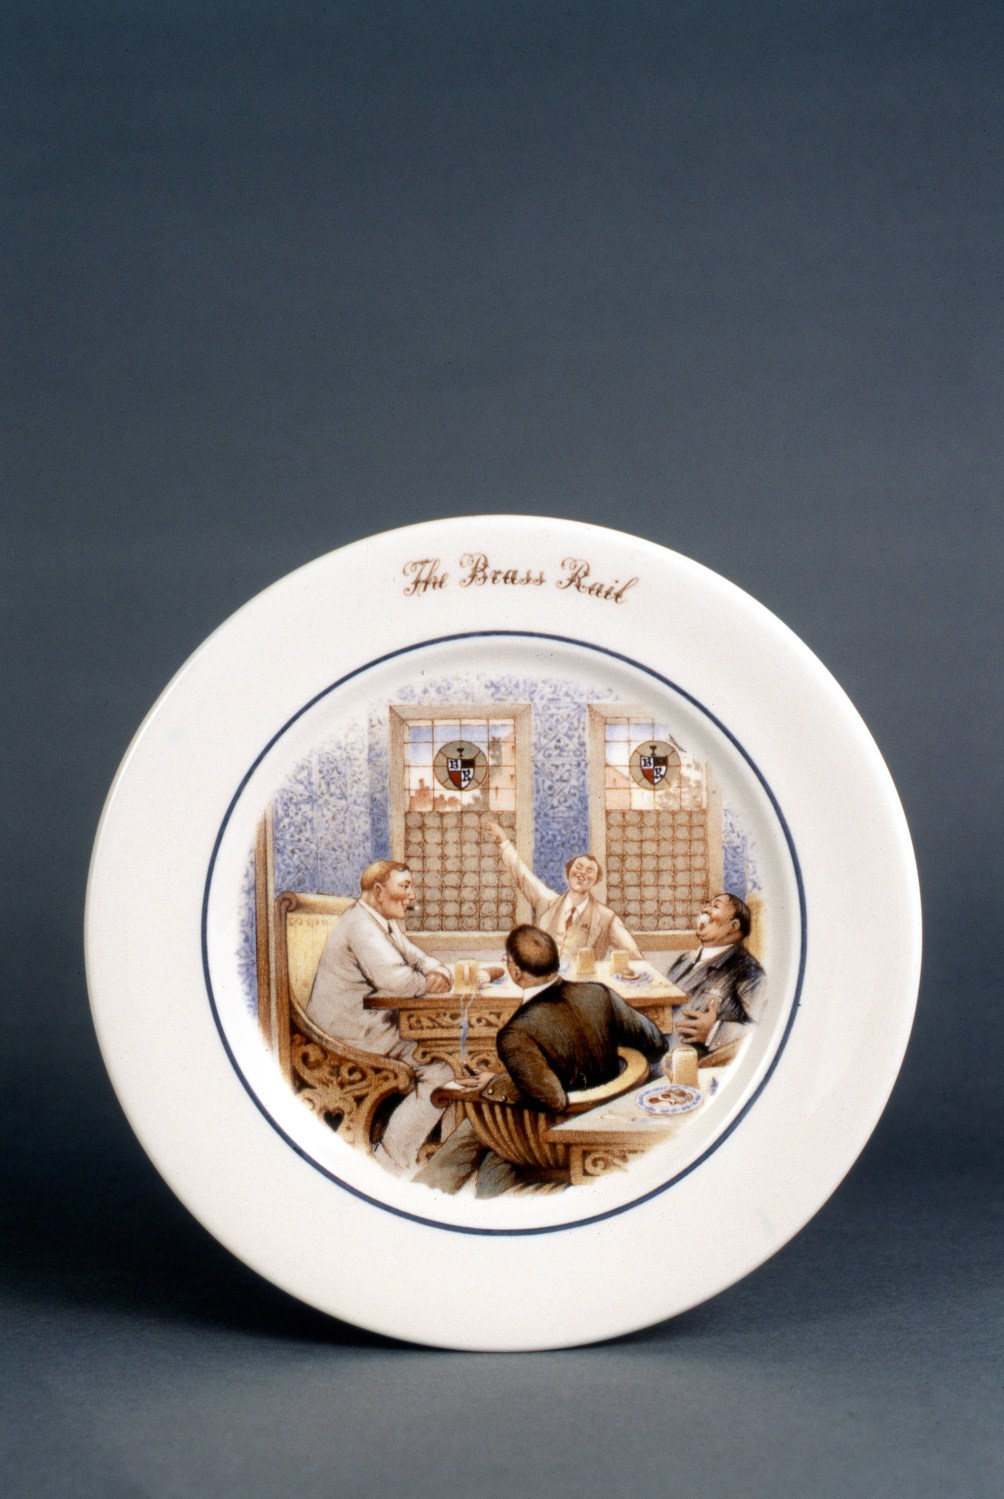 Scammell, restaurant china, service plate for The Brass Rail restaurant